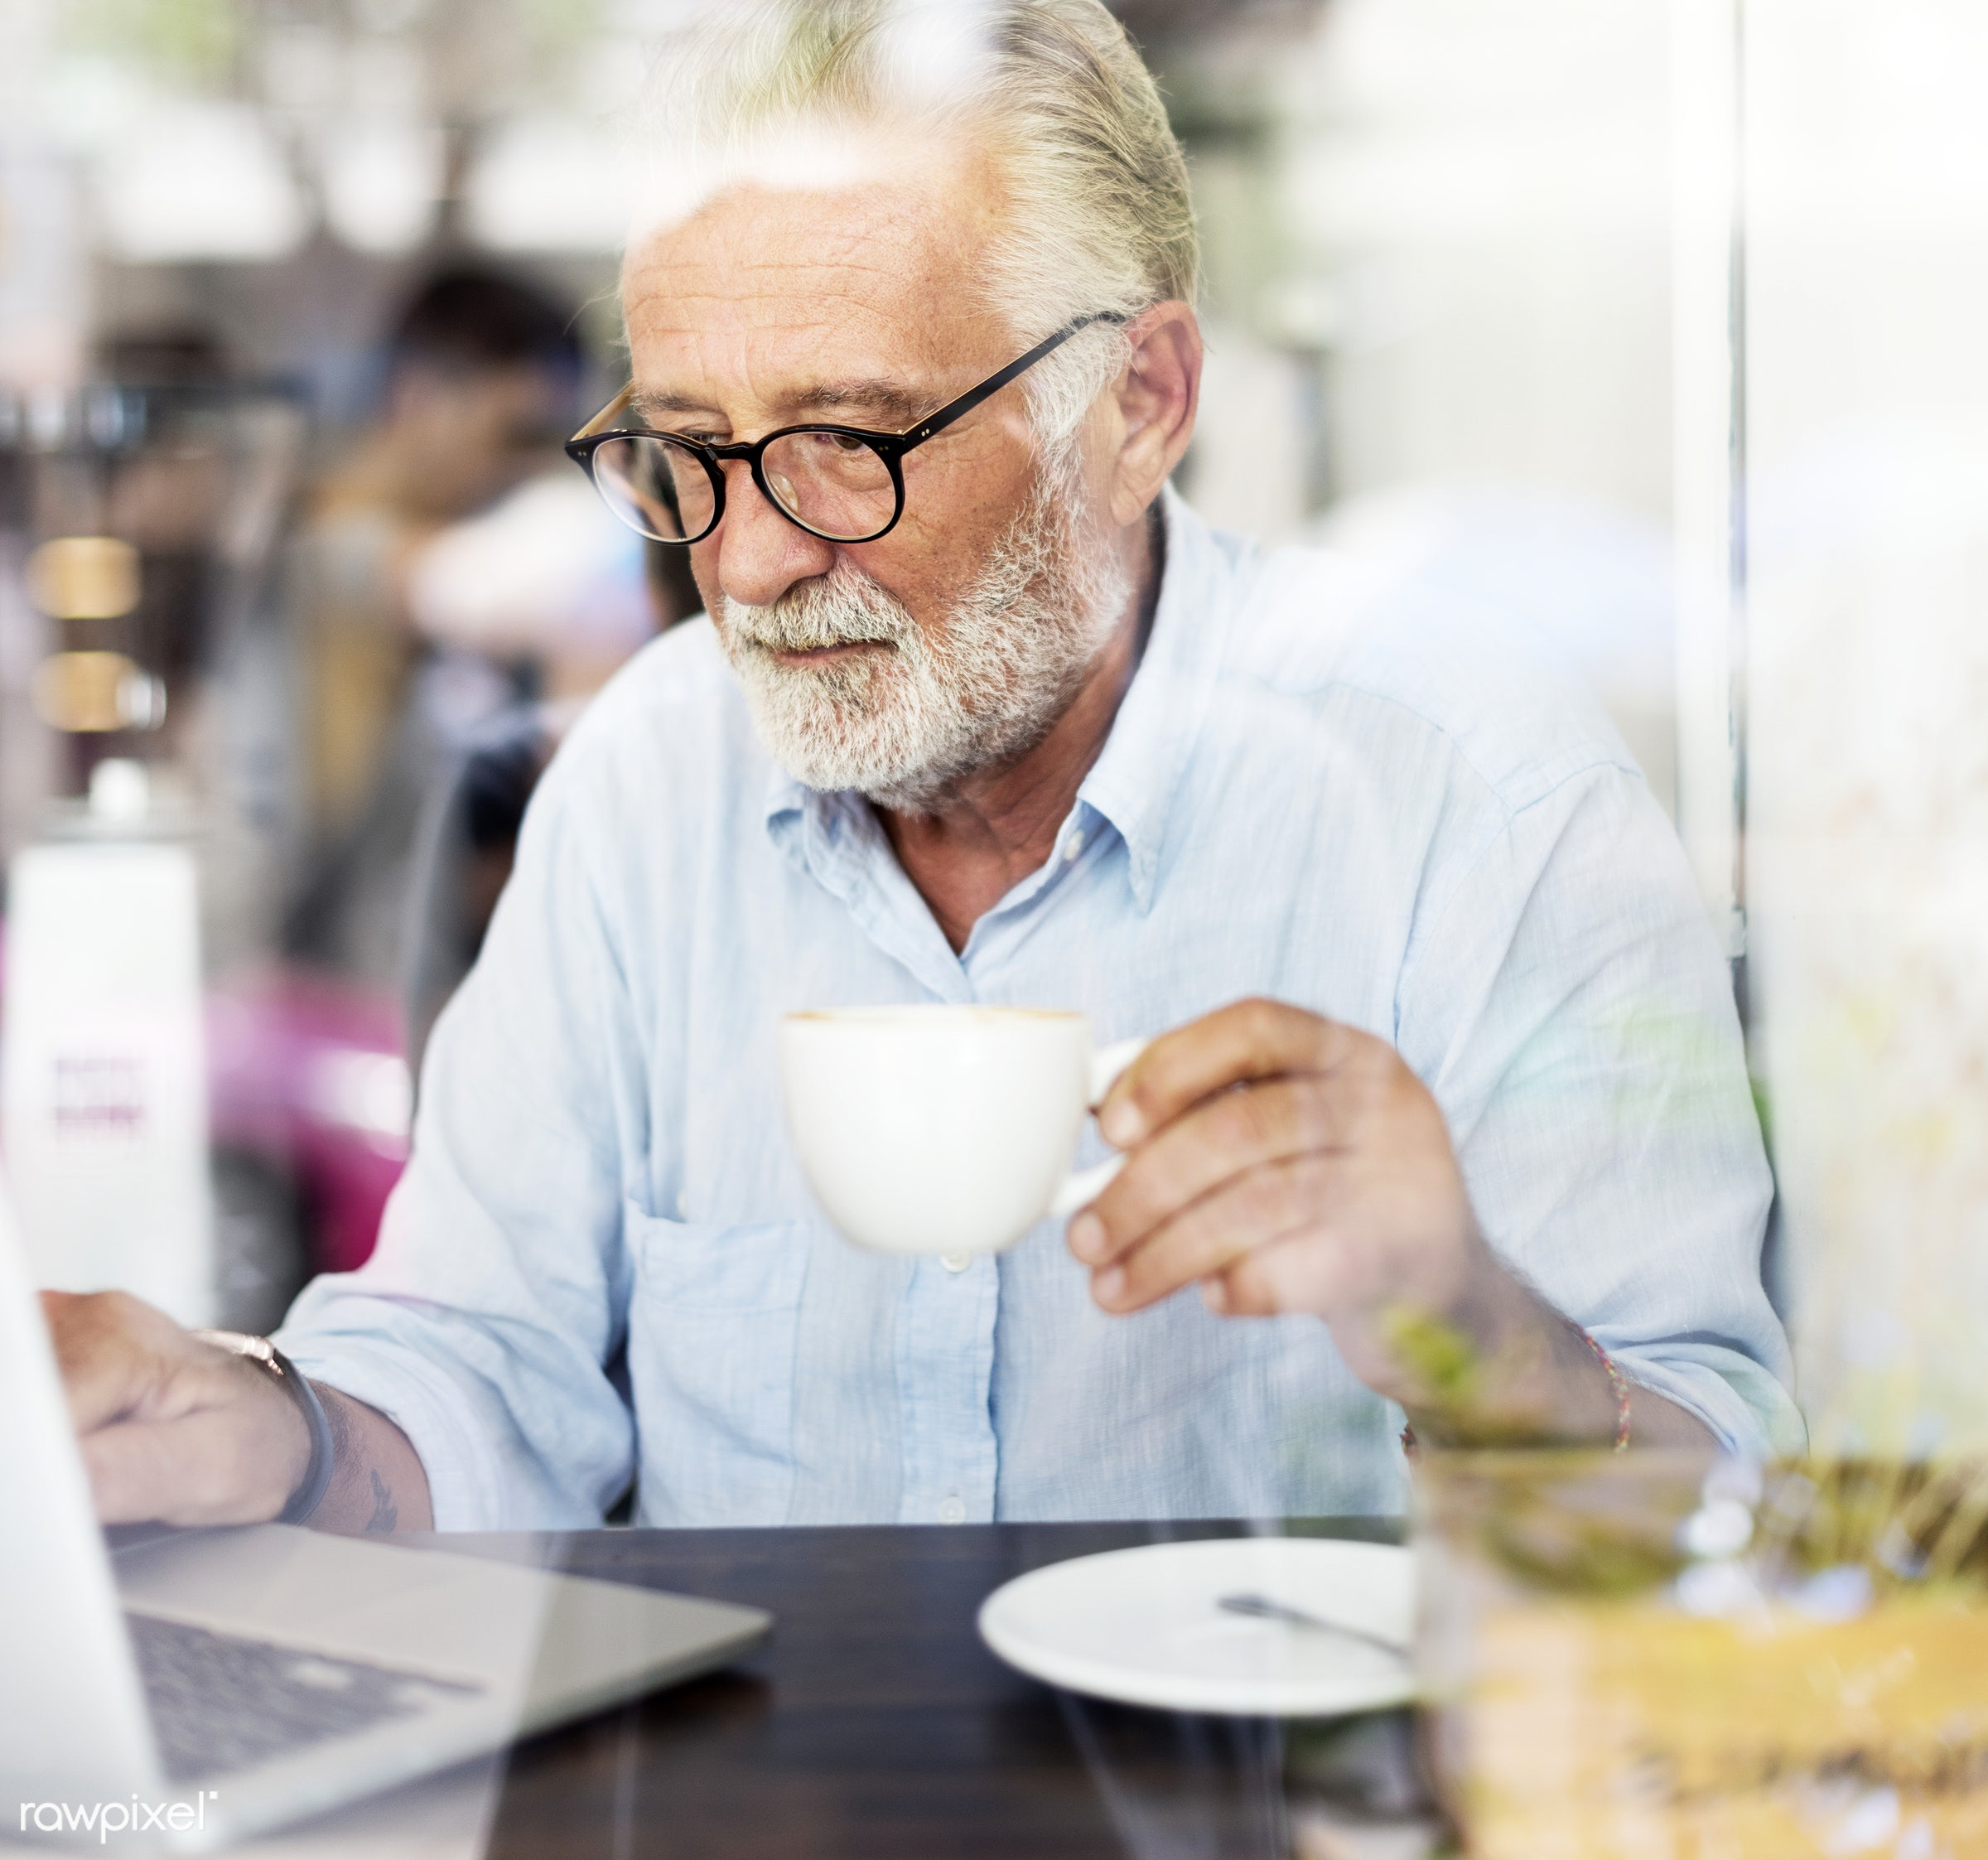 Elderly man is using computer laptop - alone, beard, casual, coffee shop, communication, computer, connection, device,...